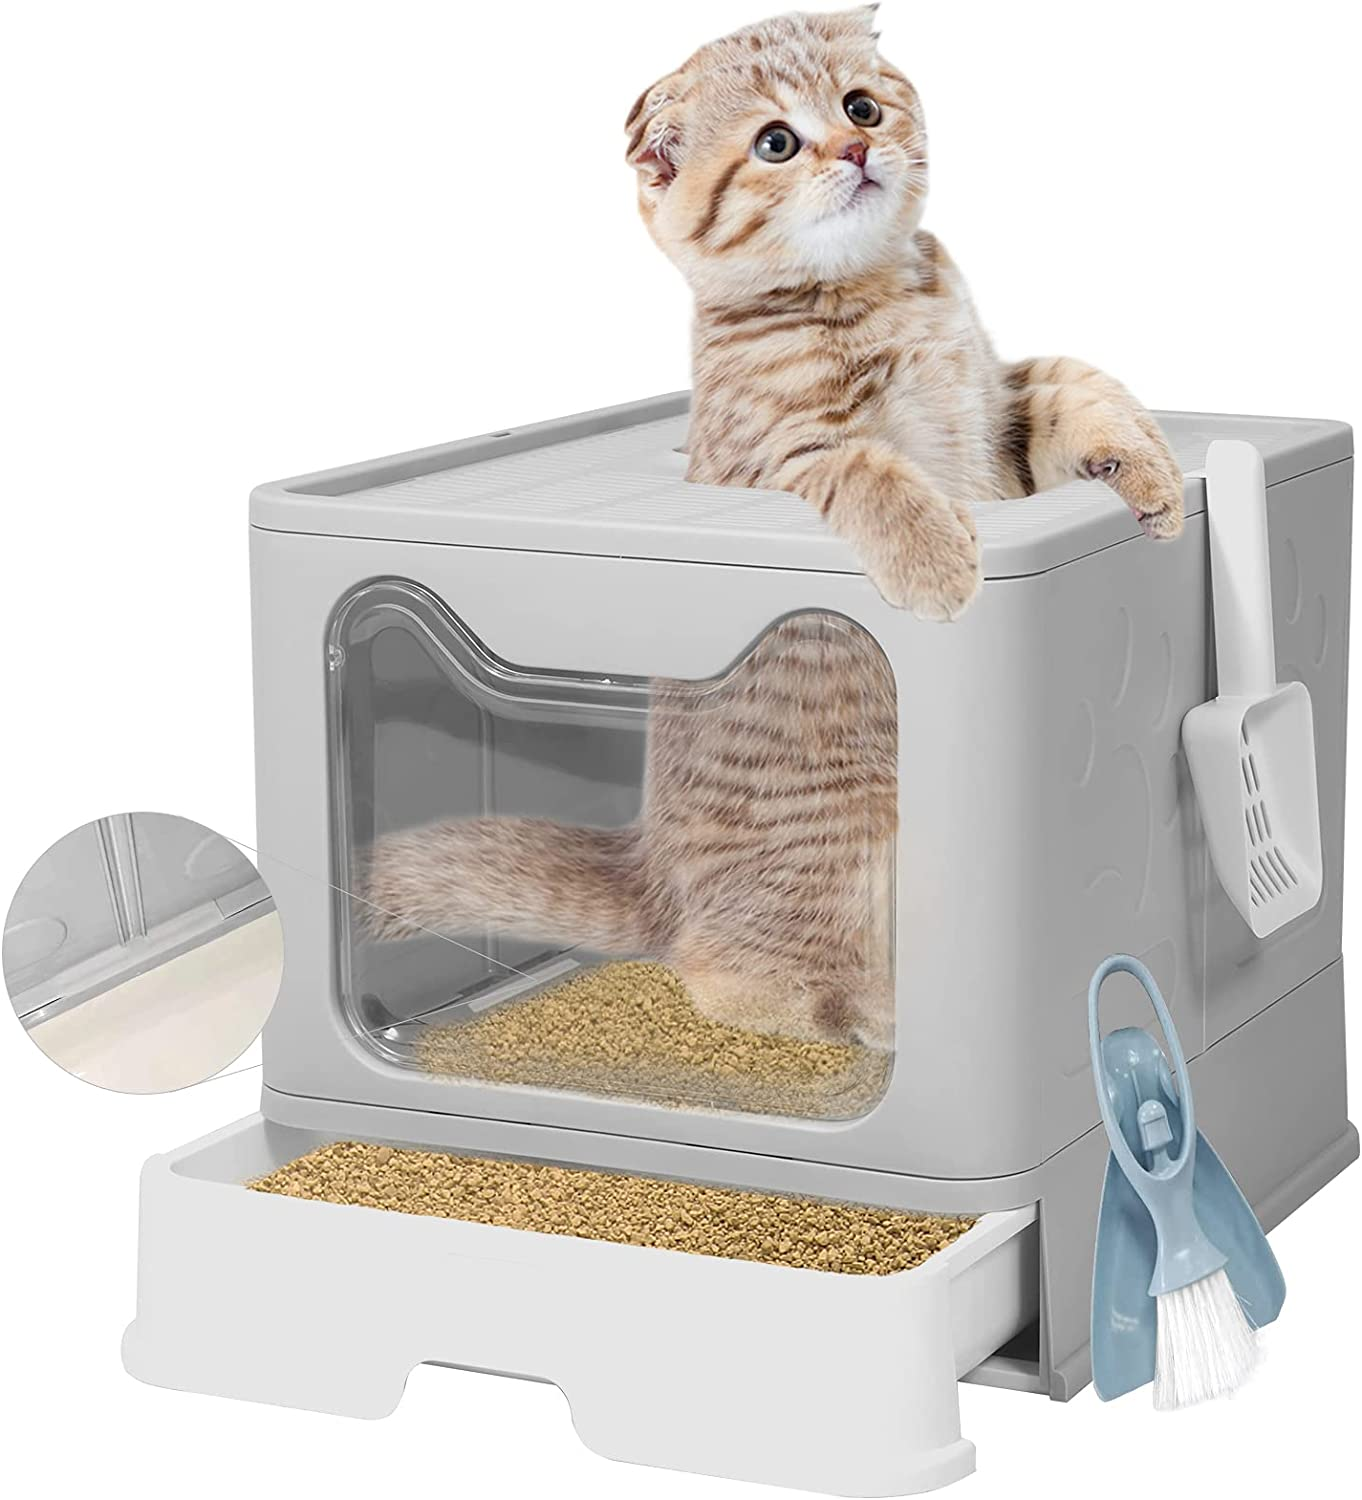 Q-Hillstar Large Top Entry Cat Box with Foldable Manufacturer Denver Mall direct delivery Lid Litter